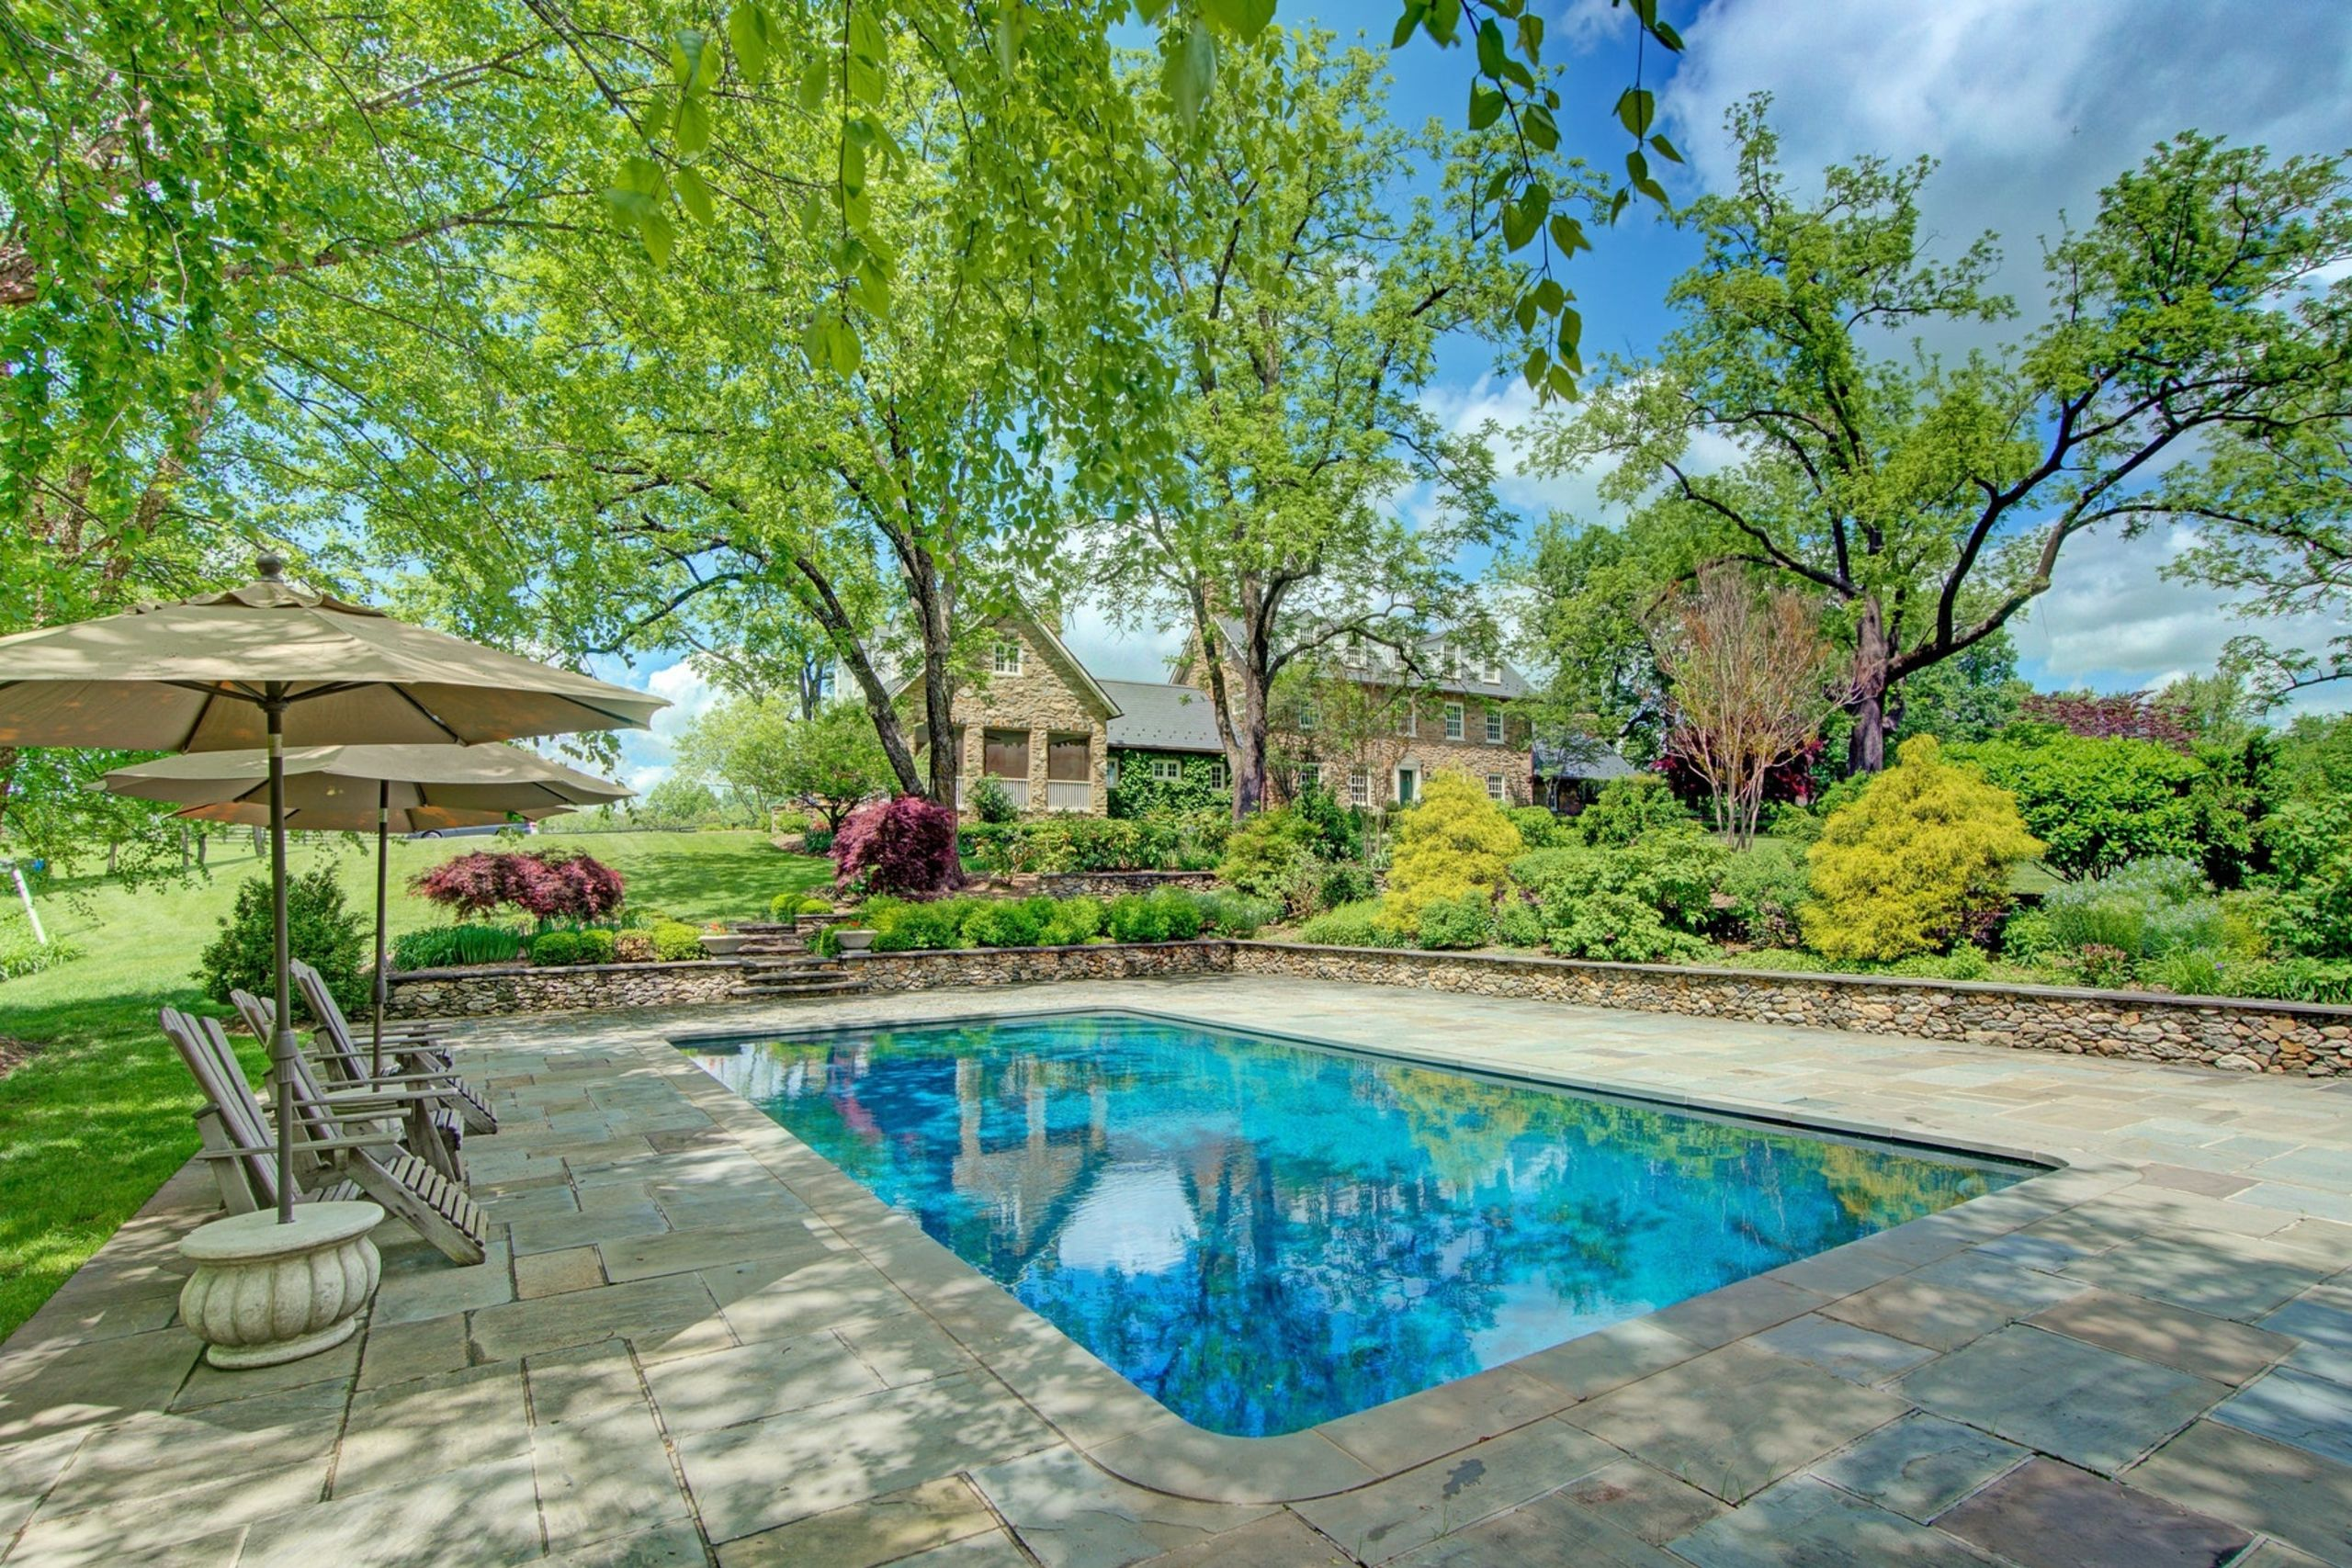 1890 Stone Manor on 94 acres in Middleburg